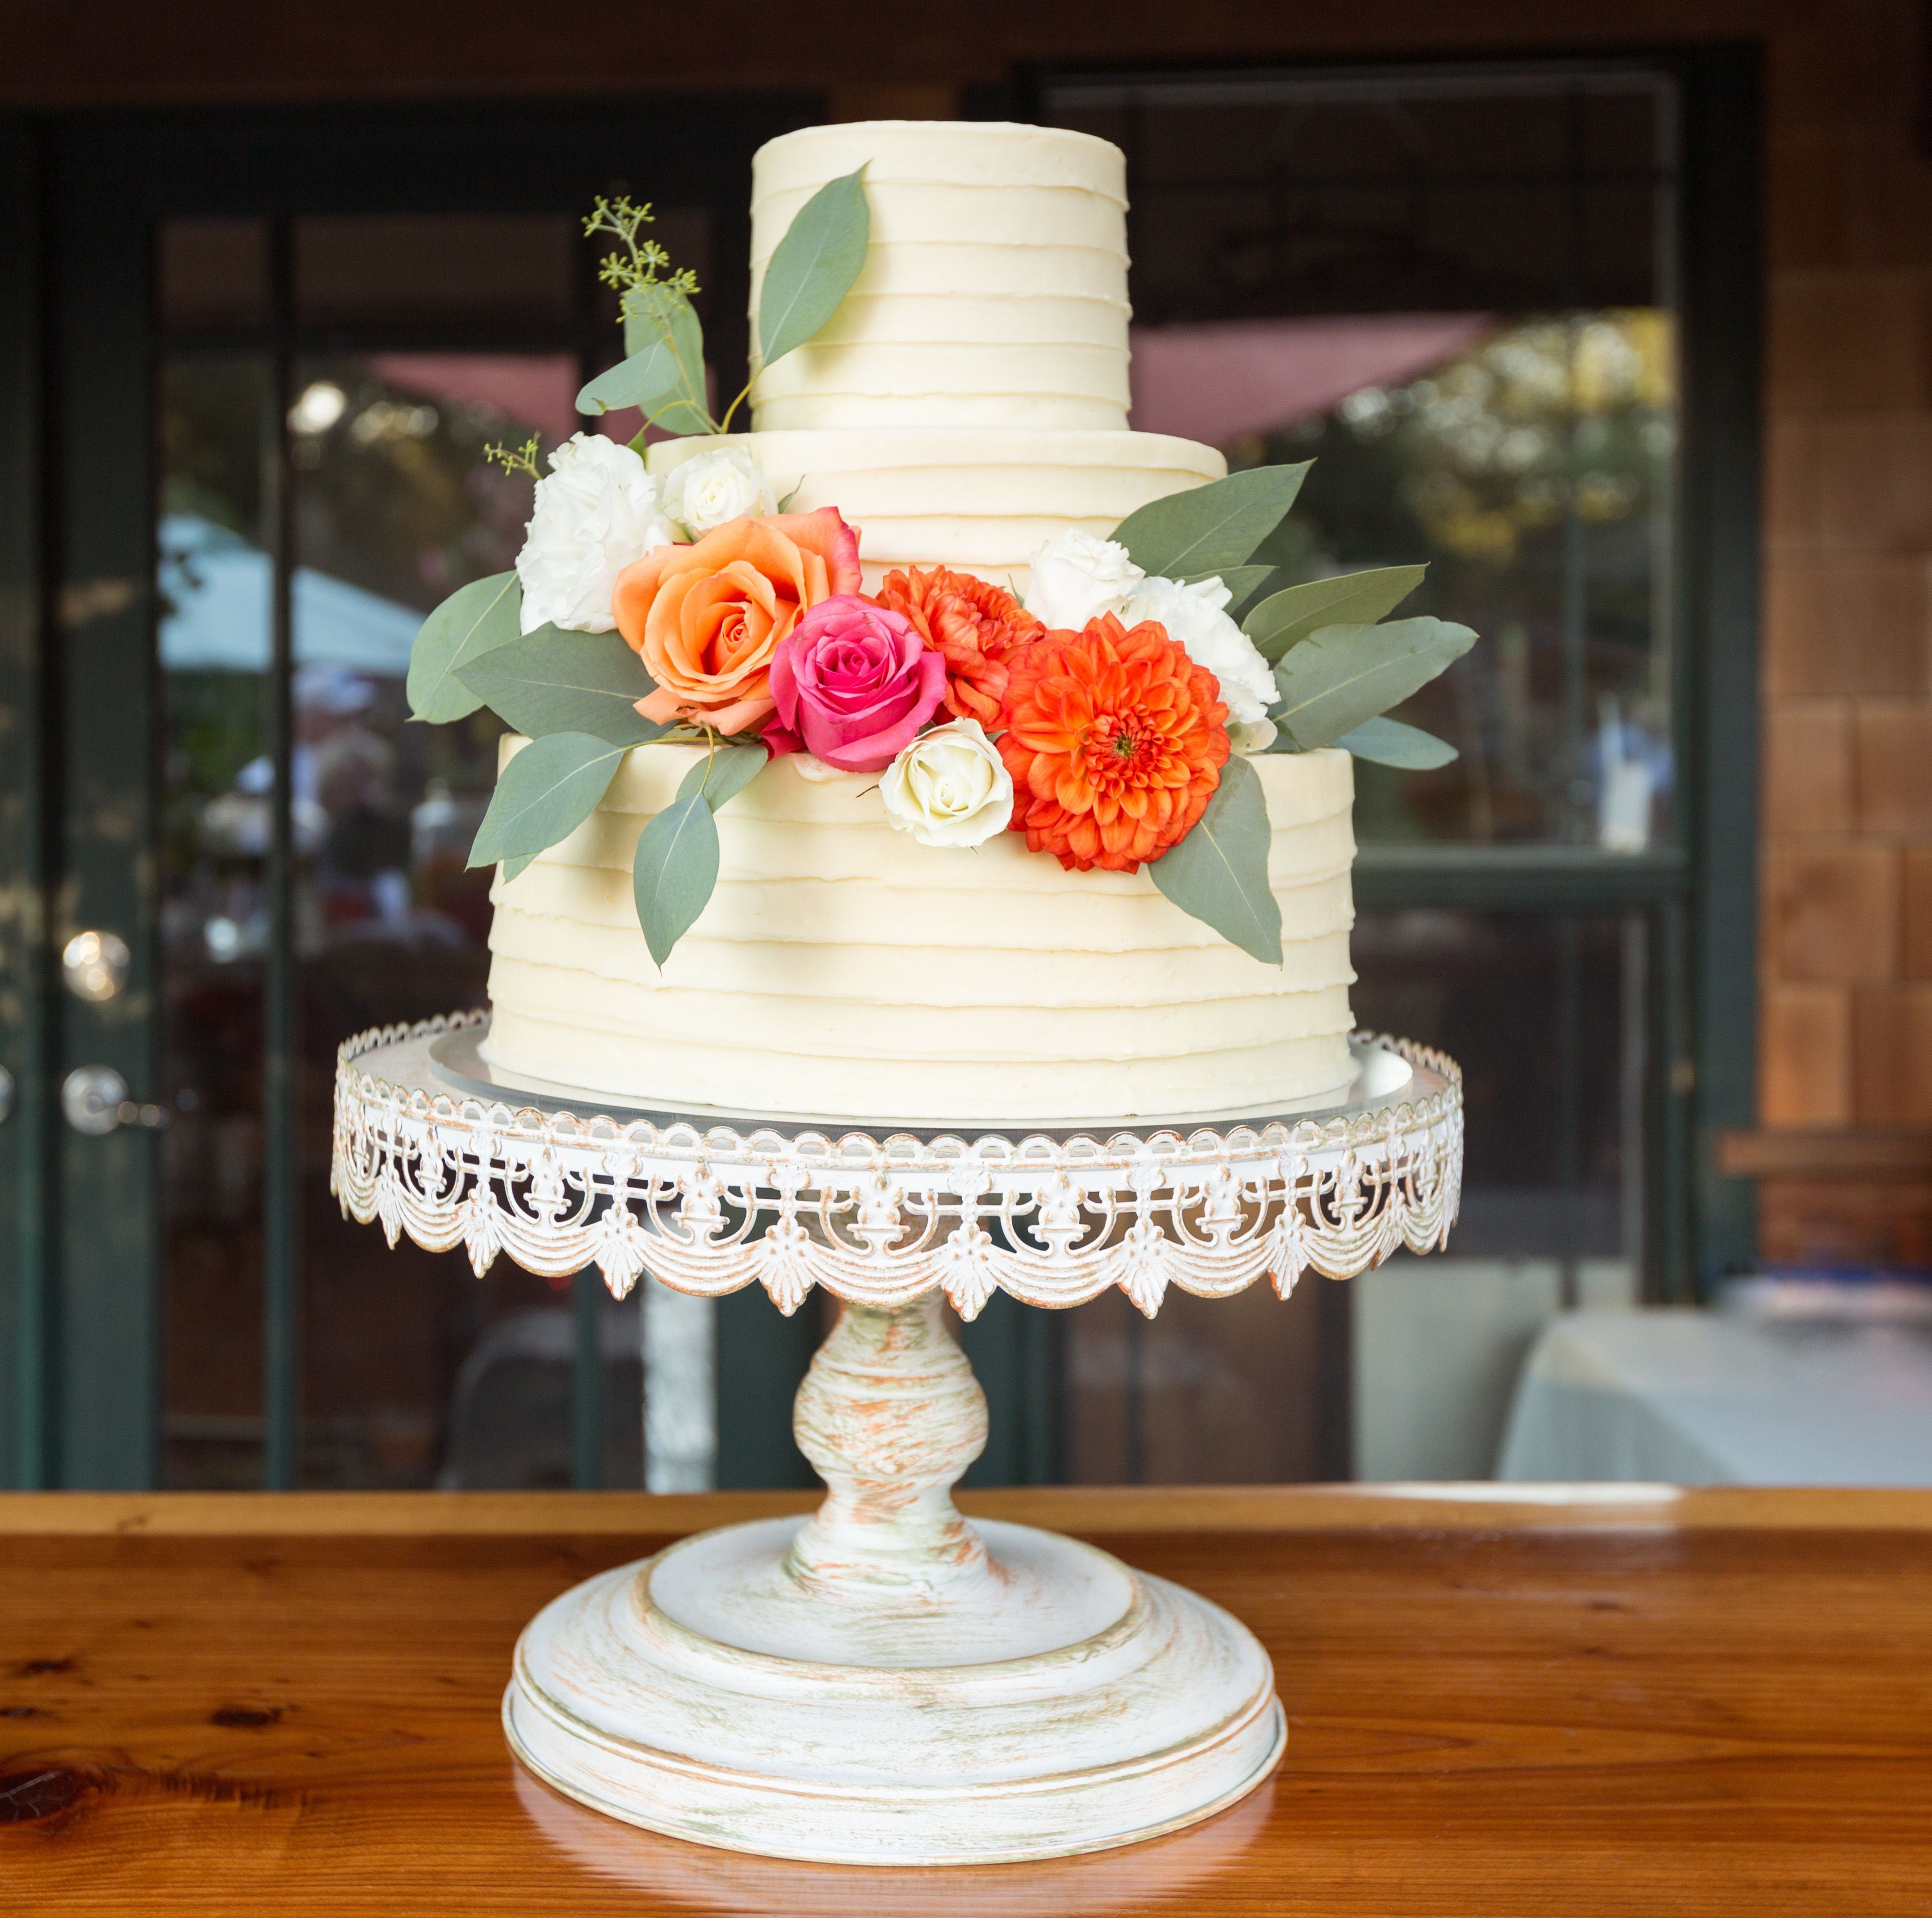 Rustic Fresh Flower Cake From Master Piece Cakes Santa Rosa Ca